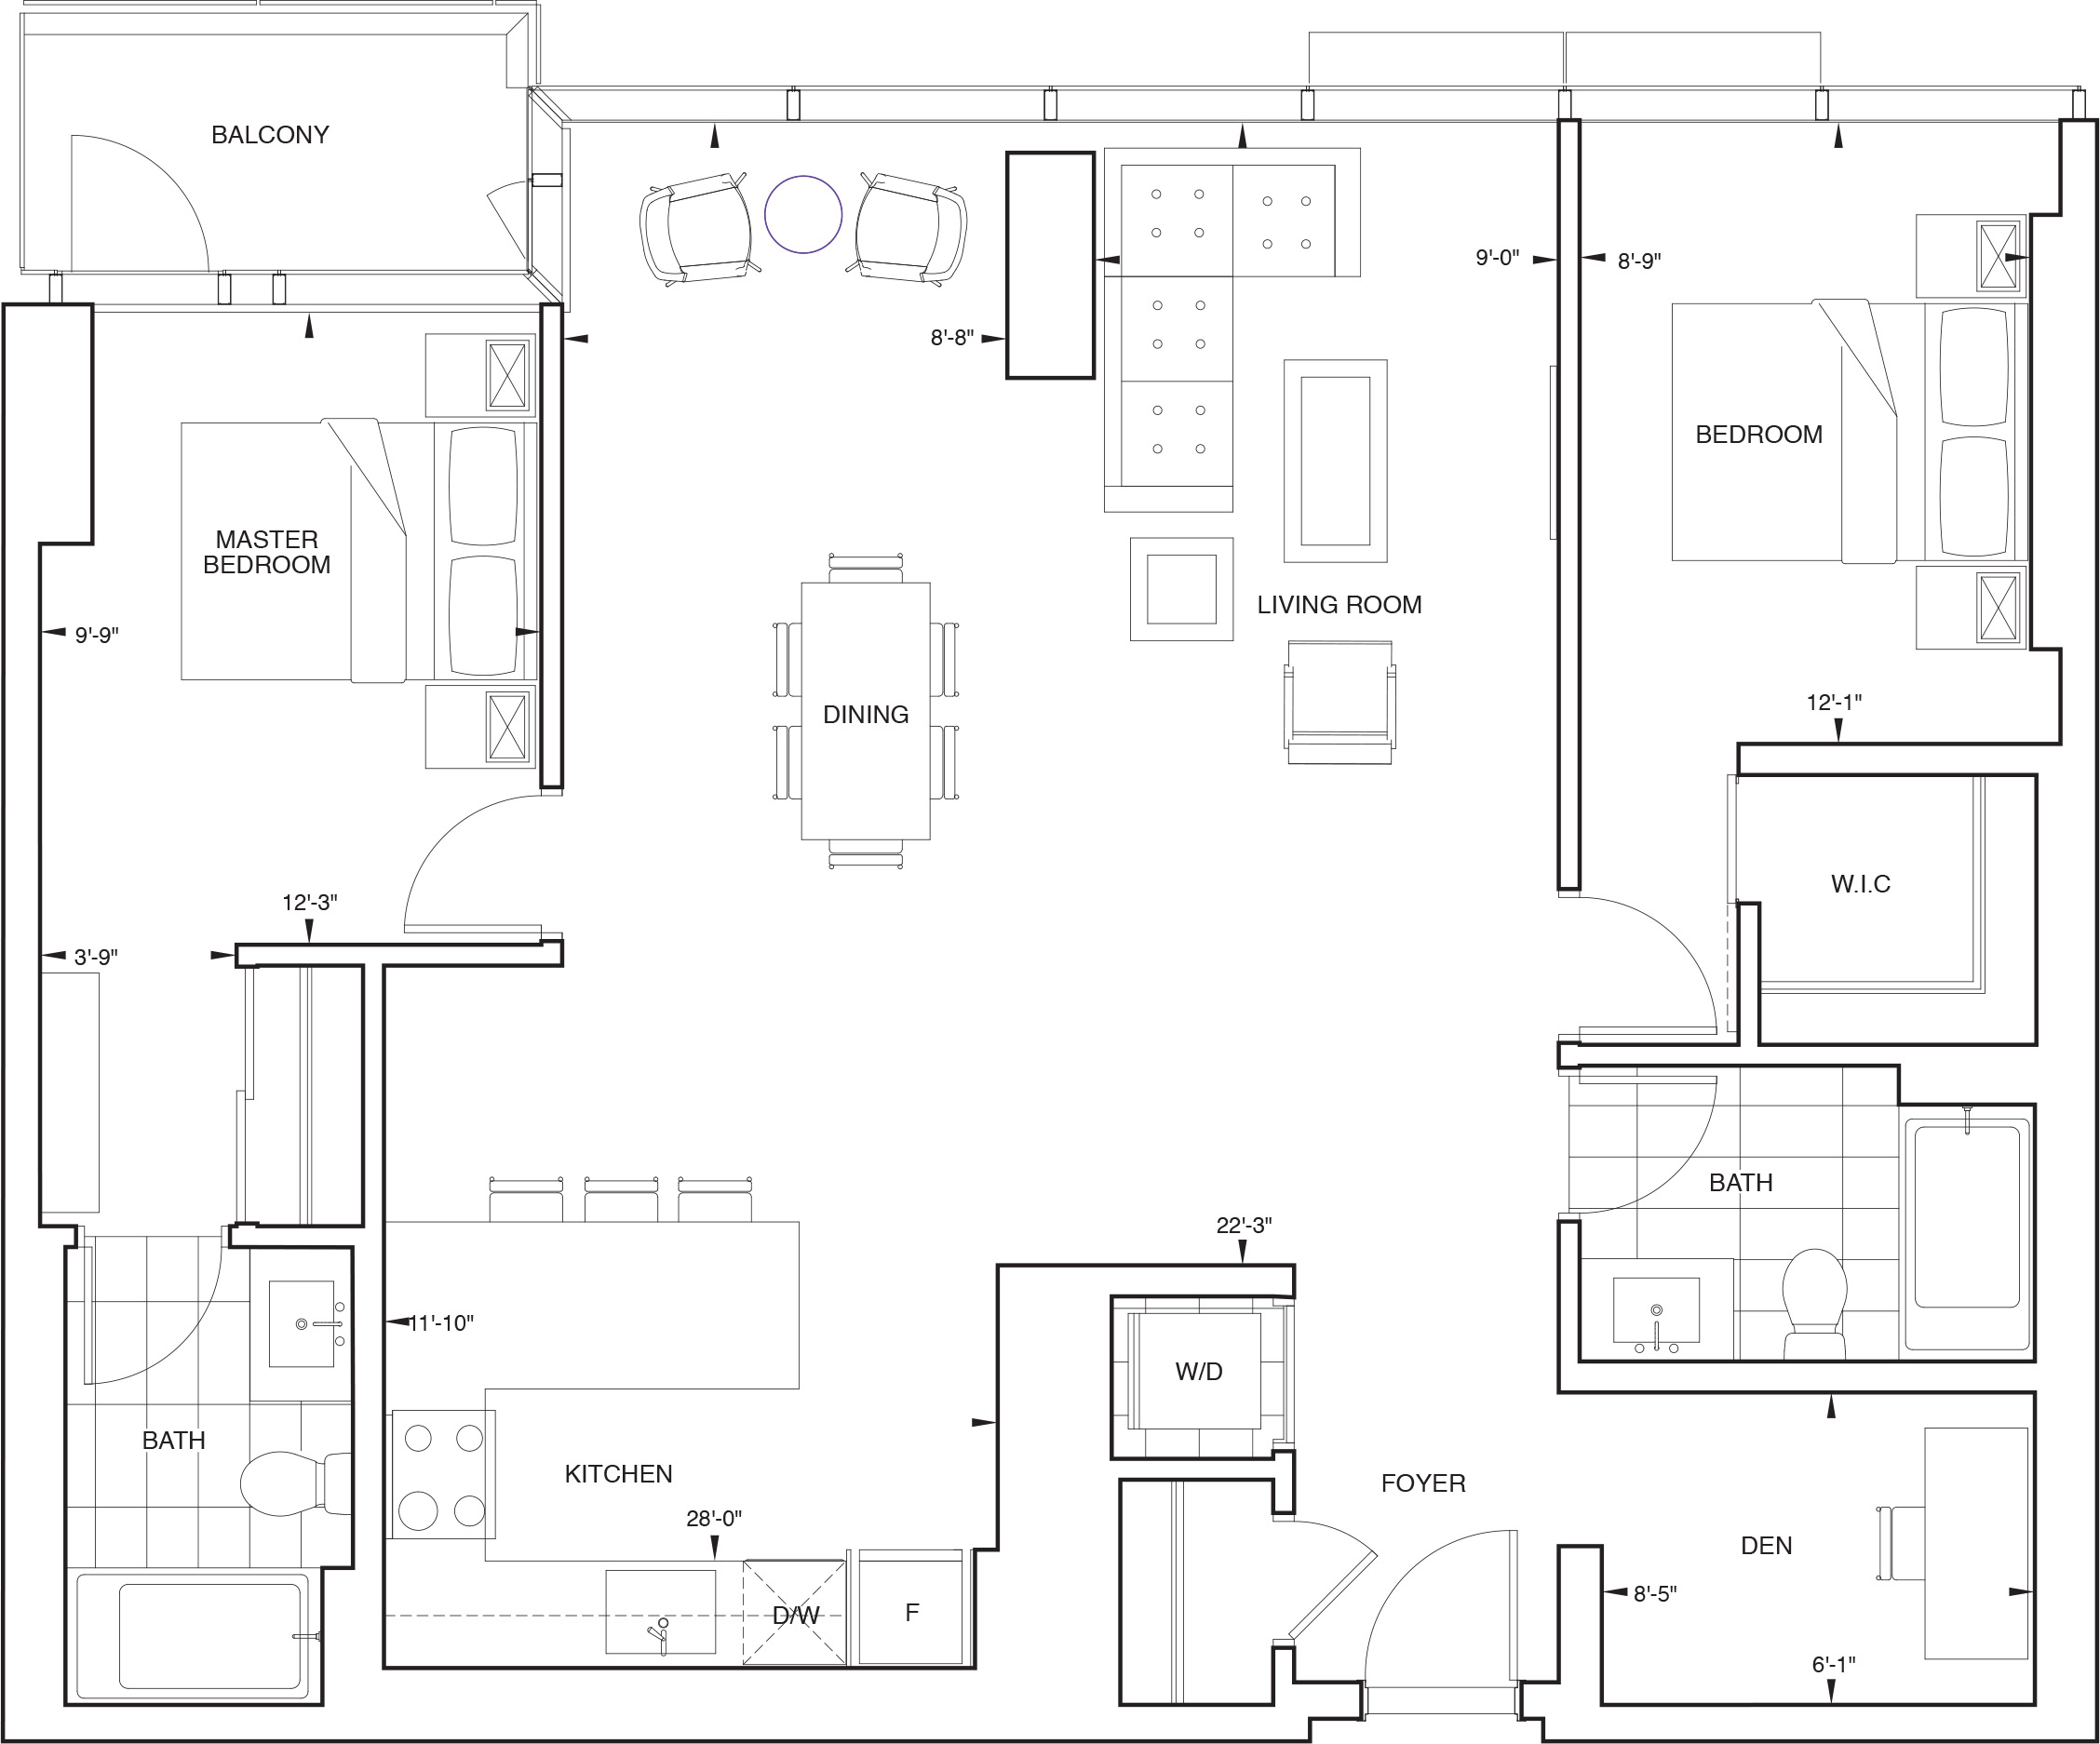 Floorplan for SKY Residence J1